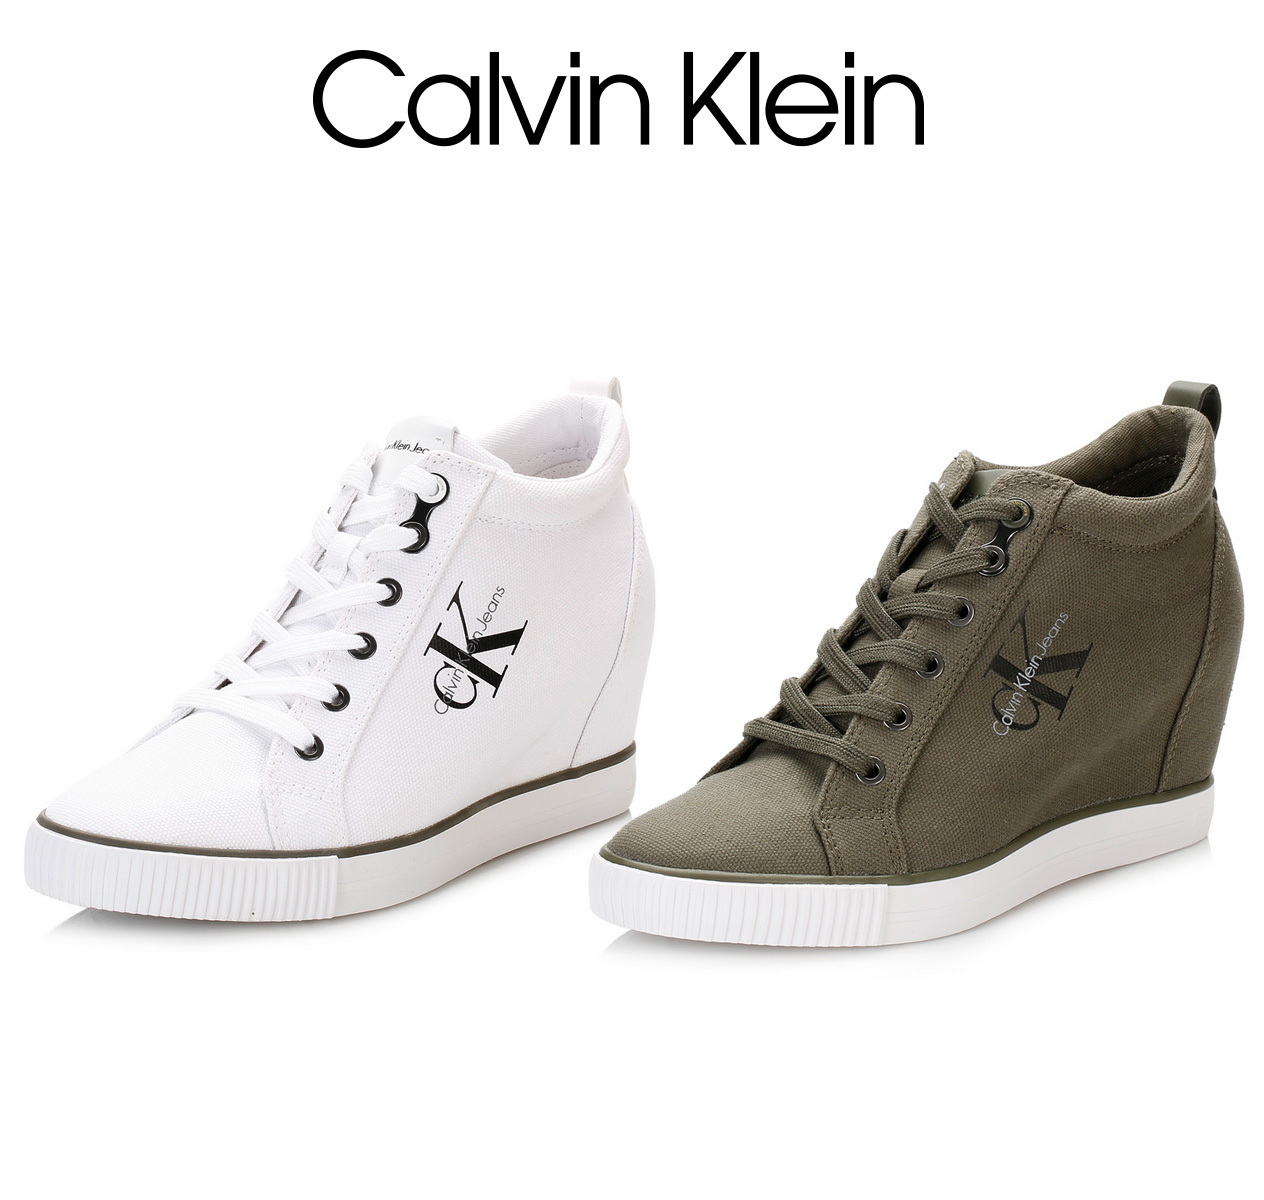 113f730f490 Details about Calvin Klein Womens Wedge Trainers